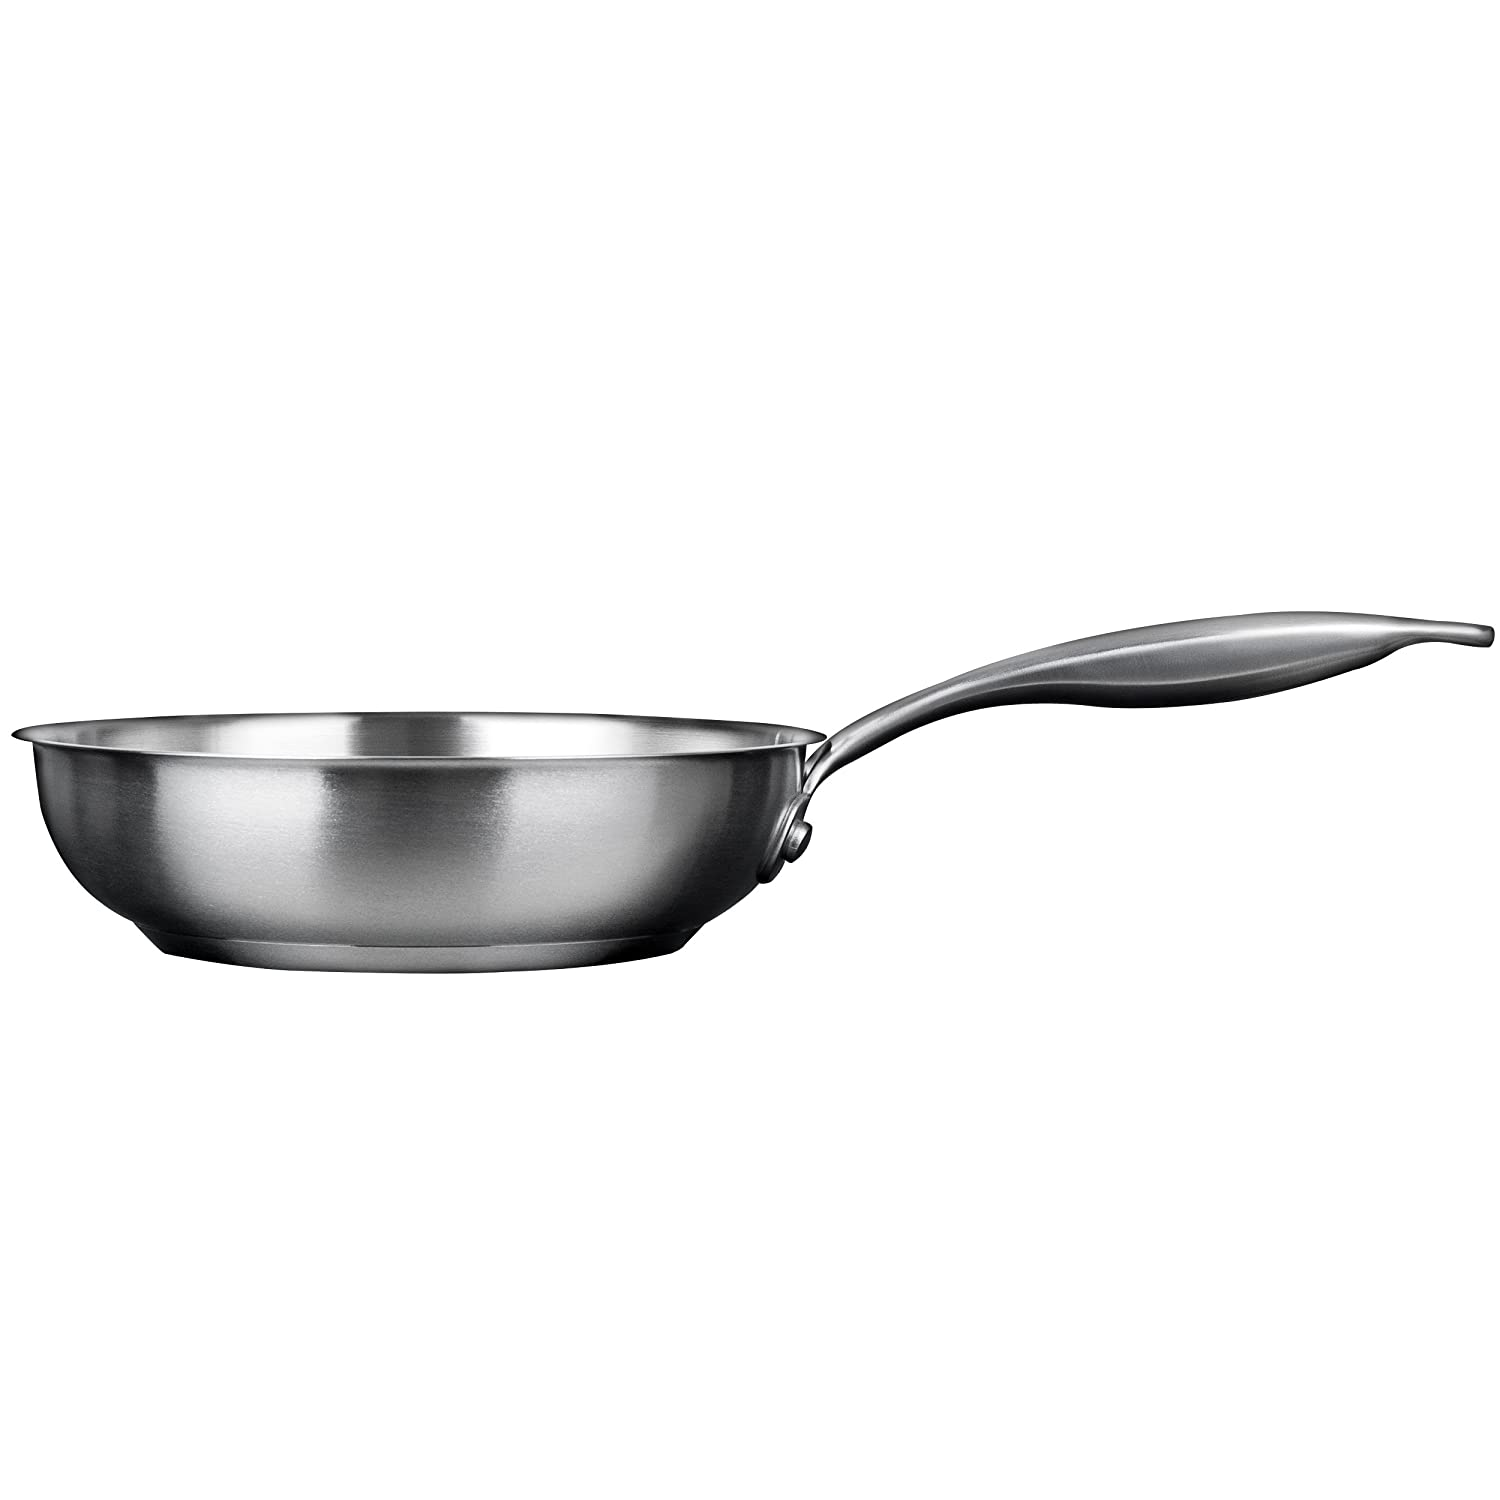 "Duxtop Professional Stainless-steel Induction Ready Cookware Impact-bonded Technology (10"" Fry Pan)"